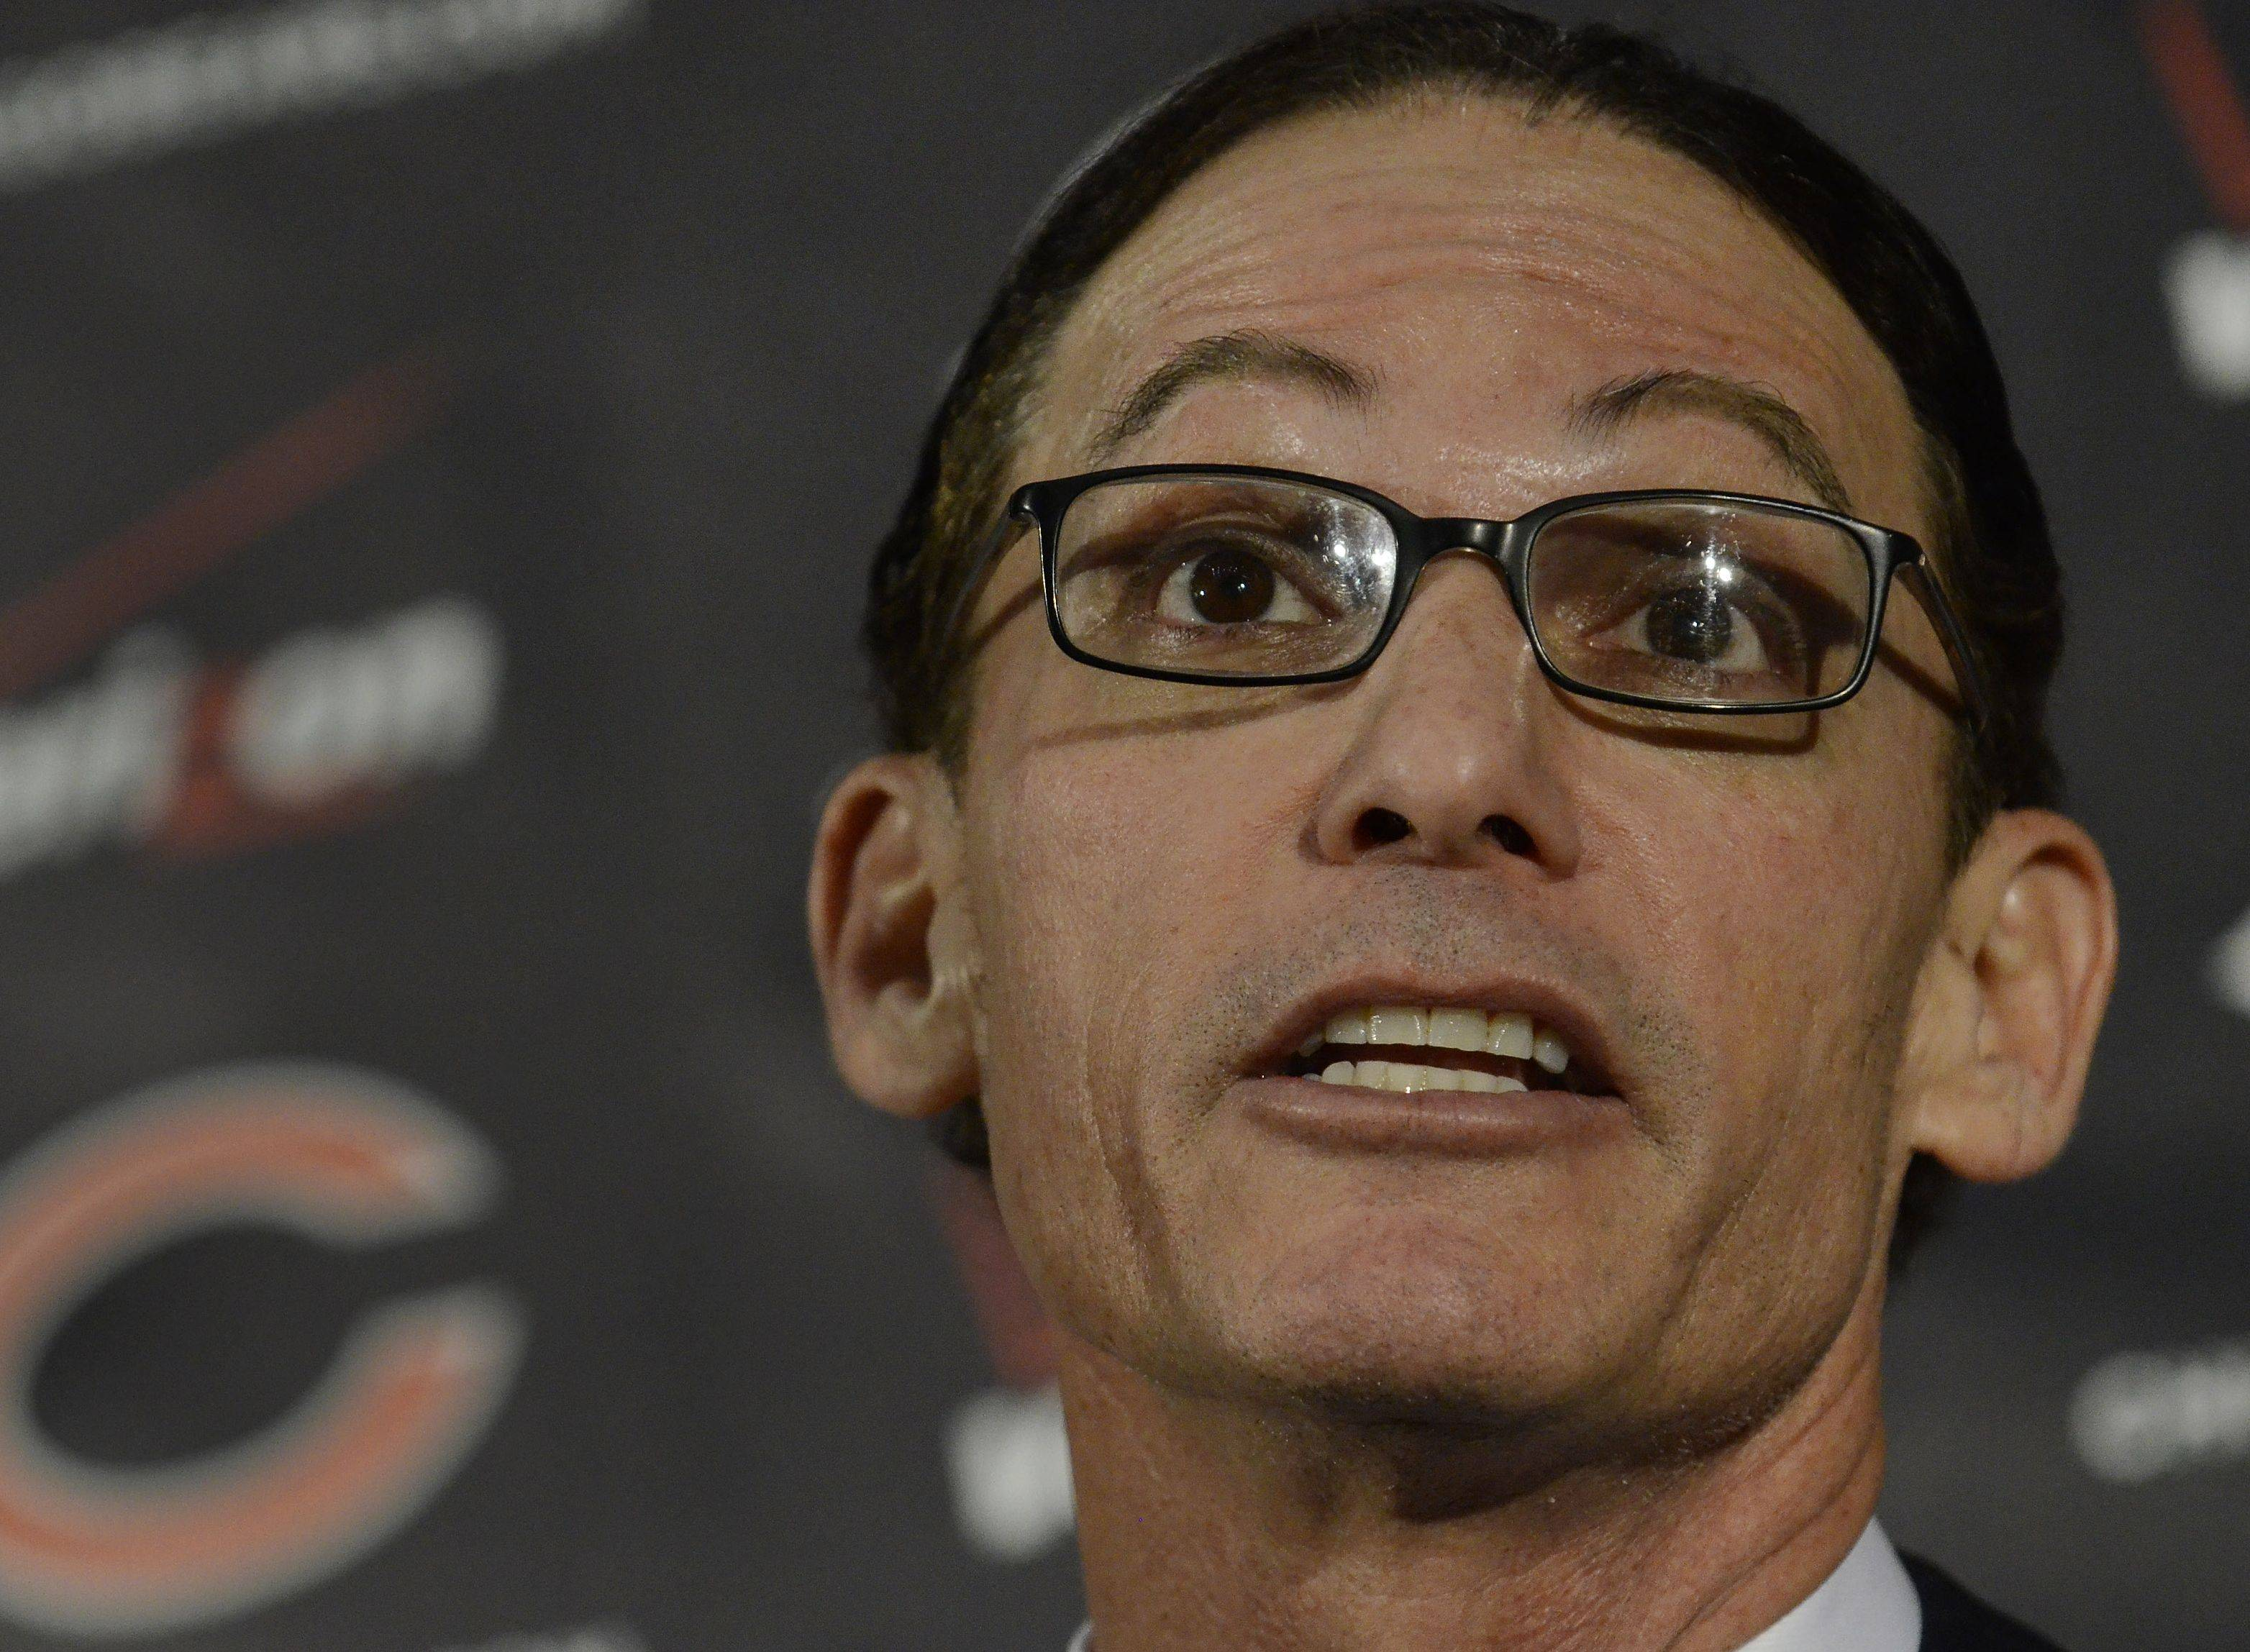 After being introduced as the 14th head coach of the Bears, Marc Trestman told reporters he expects his players to really love football.